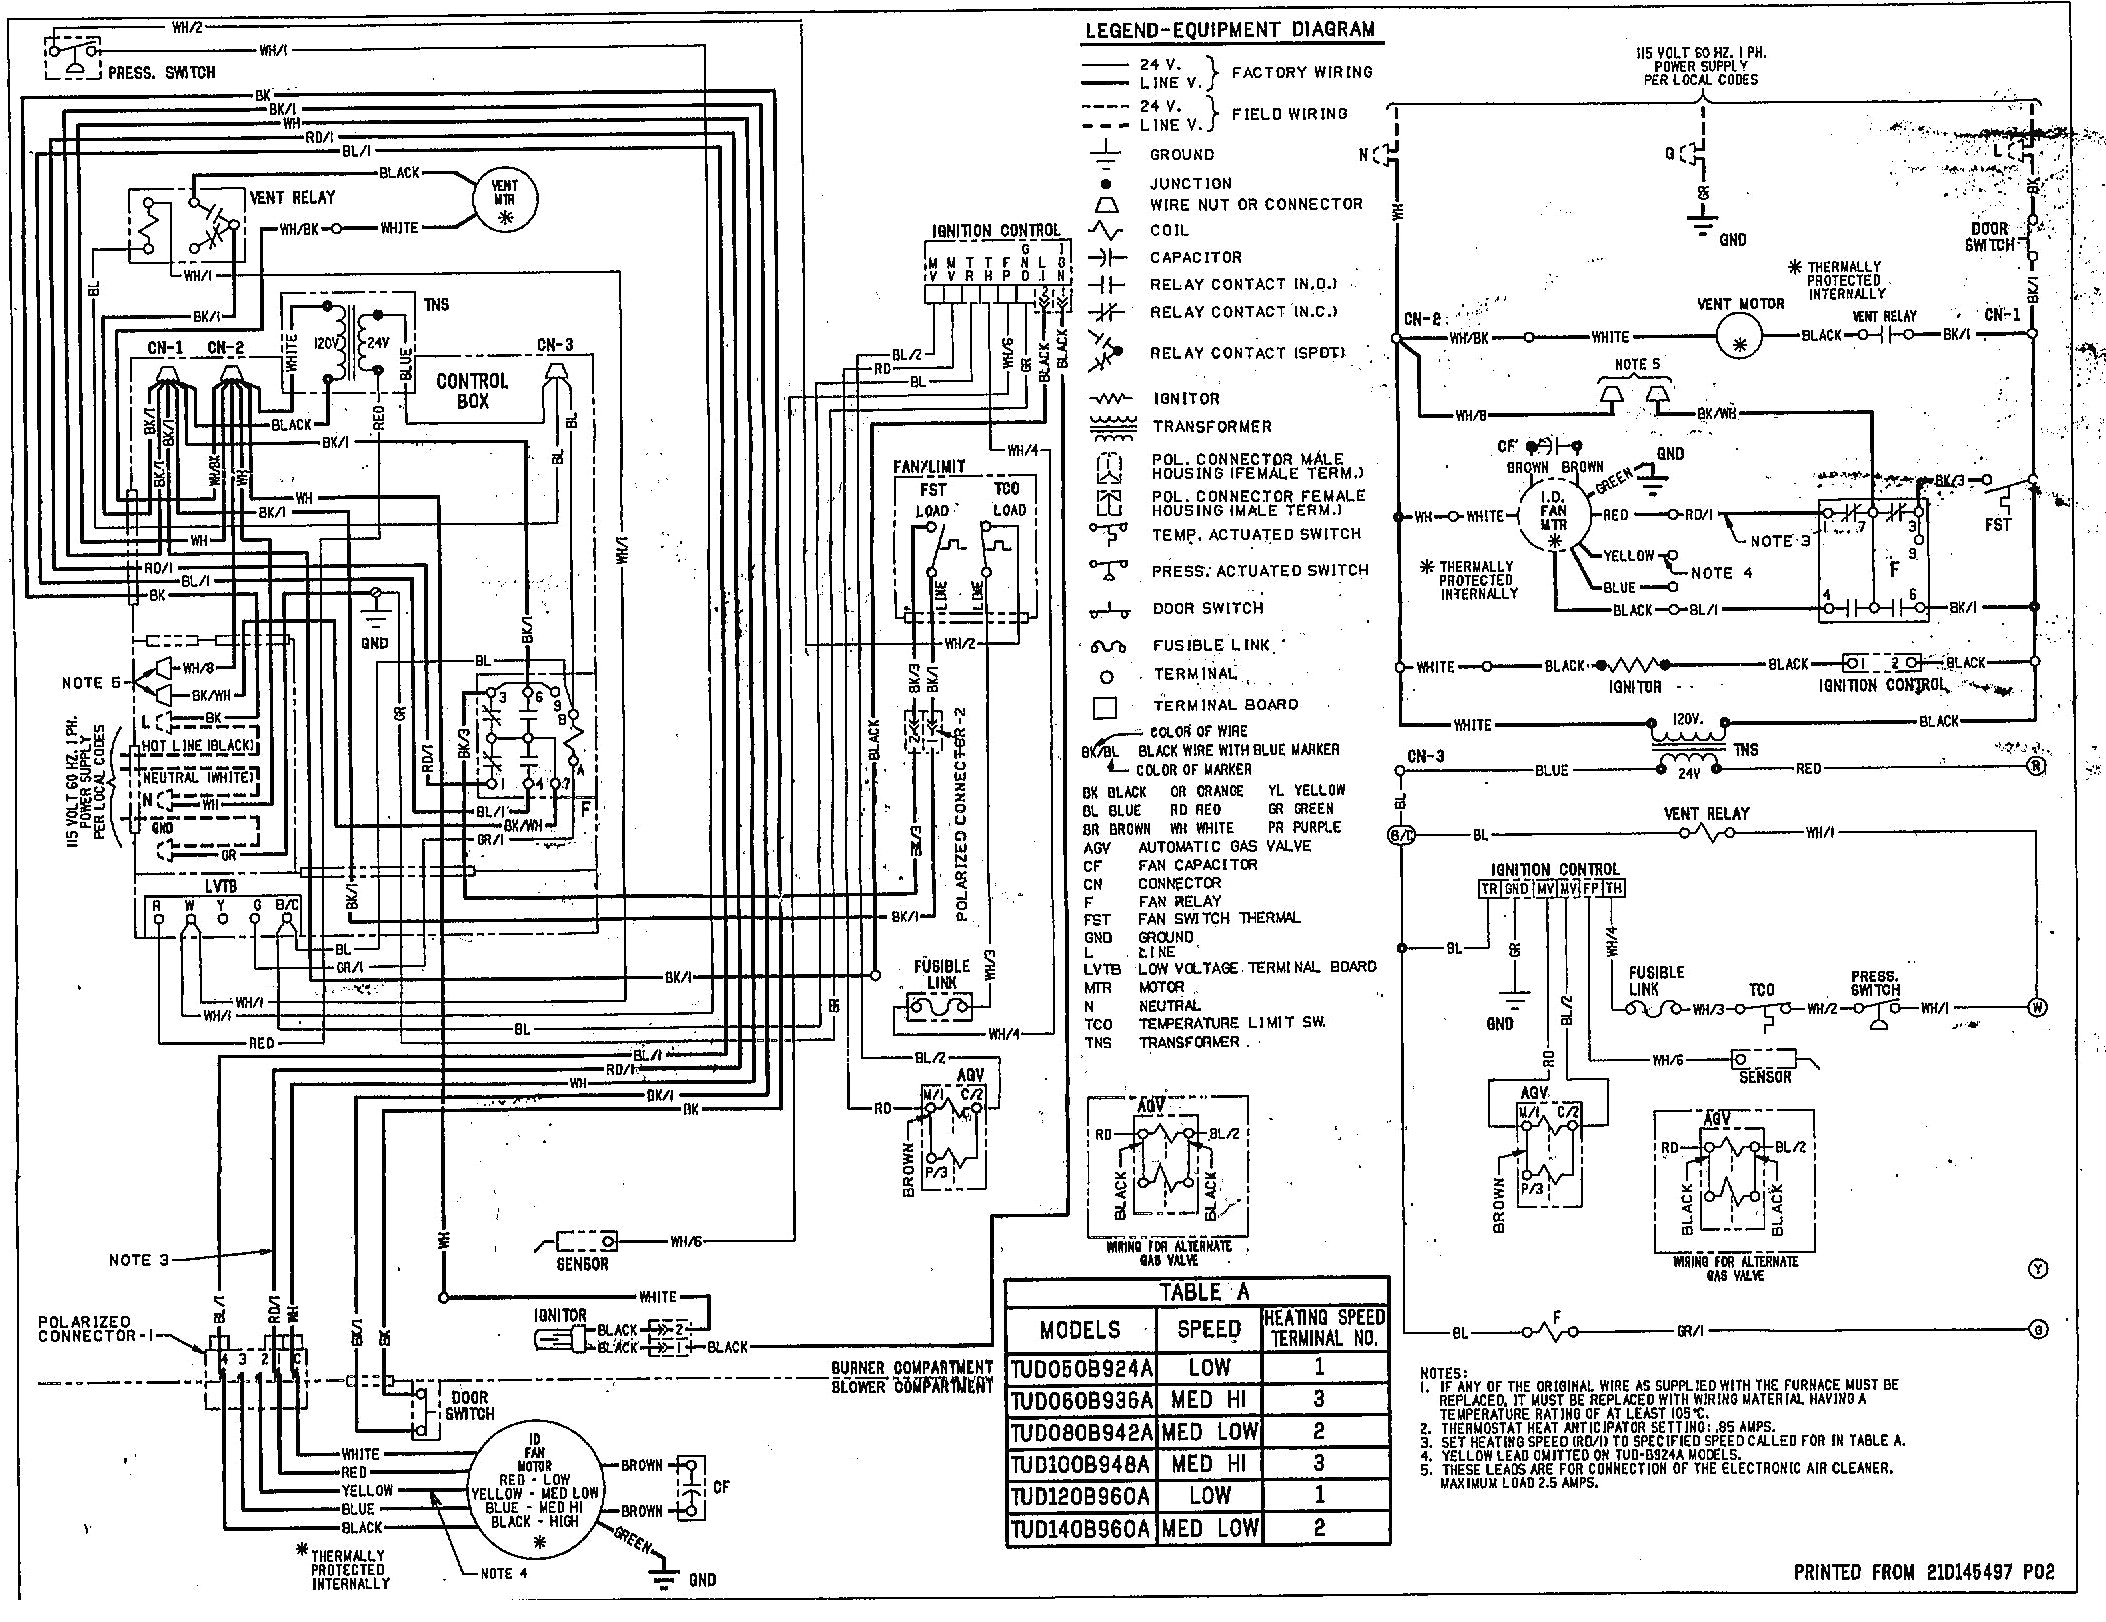 Trane Xt500c Thermostat Wiring Diagram